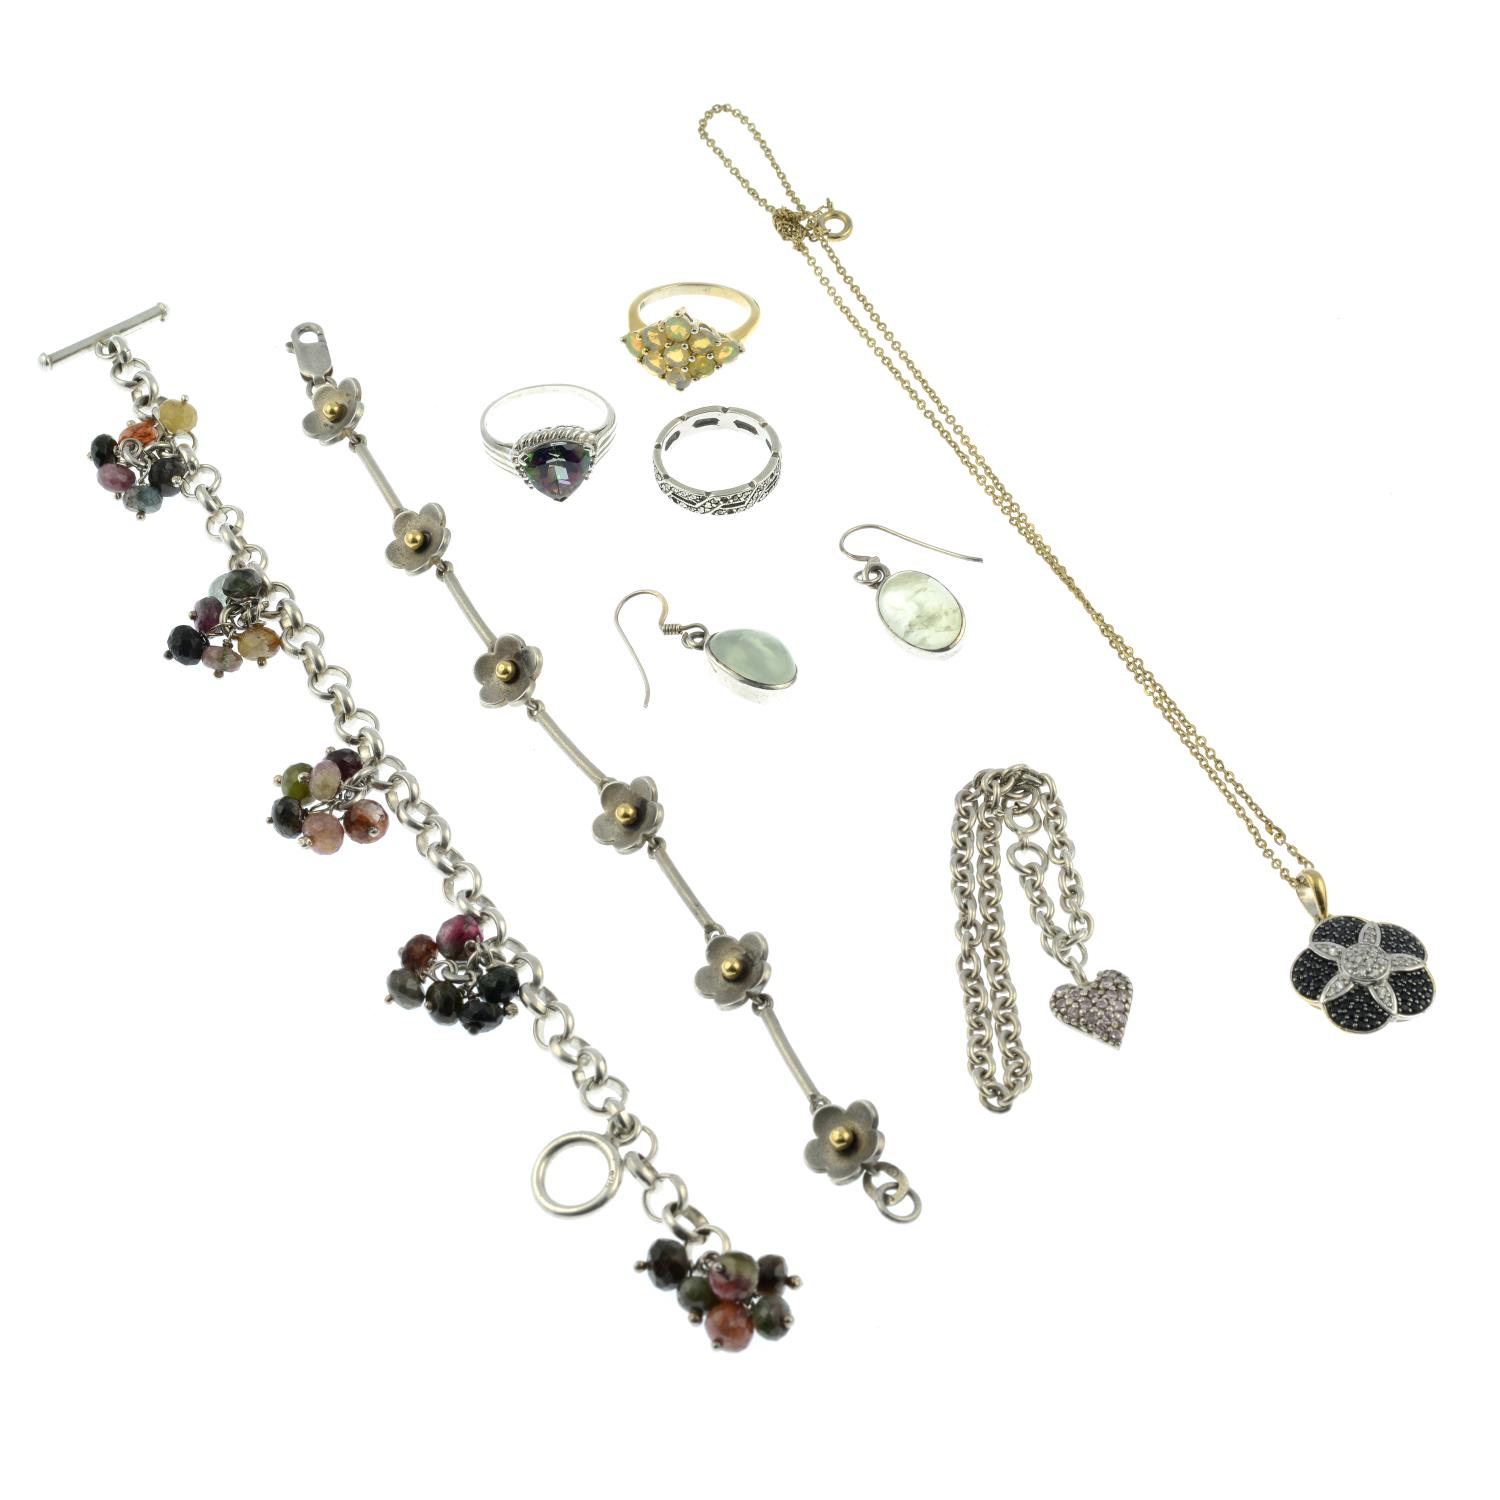 A selection of jewellery, to include a daisy chain motif bracelet. - Image 2 of 2